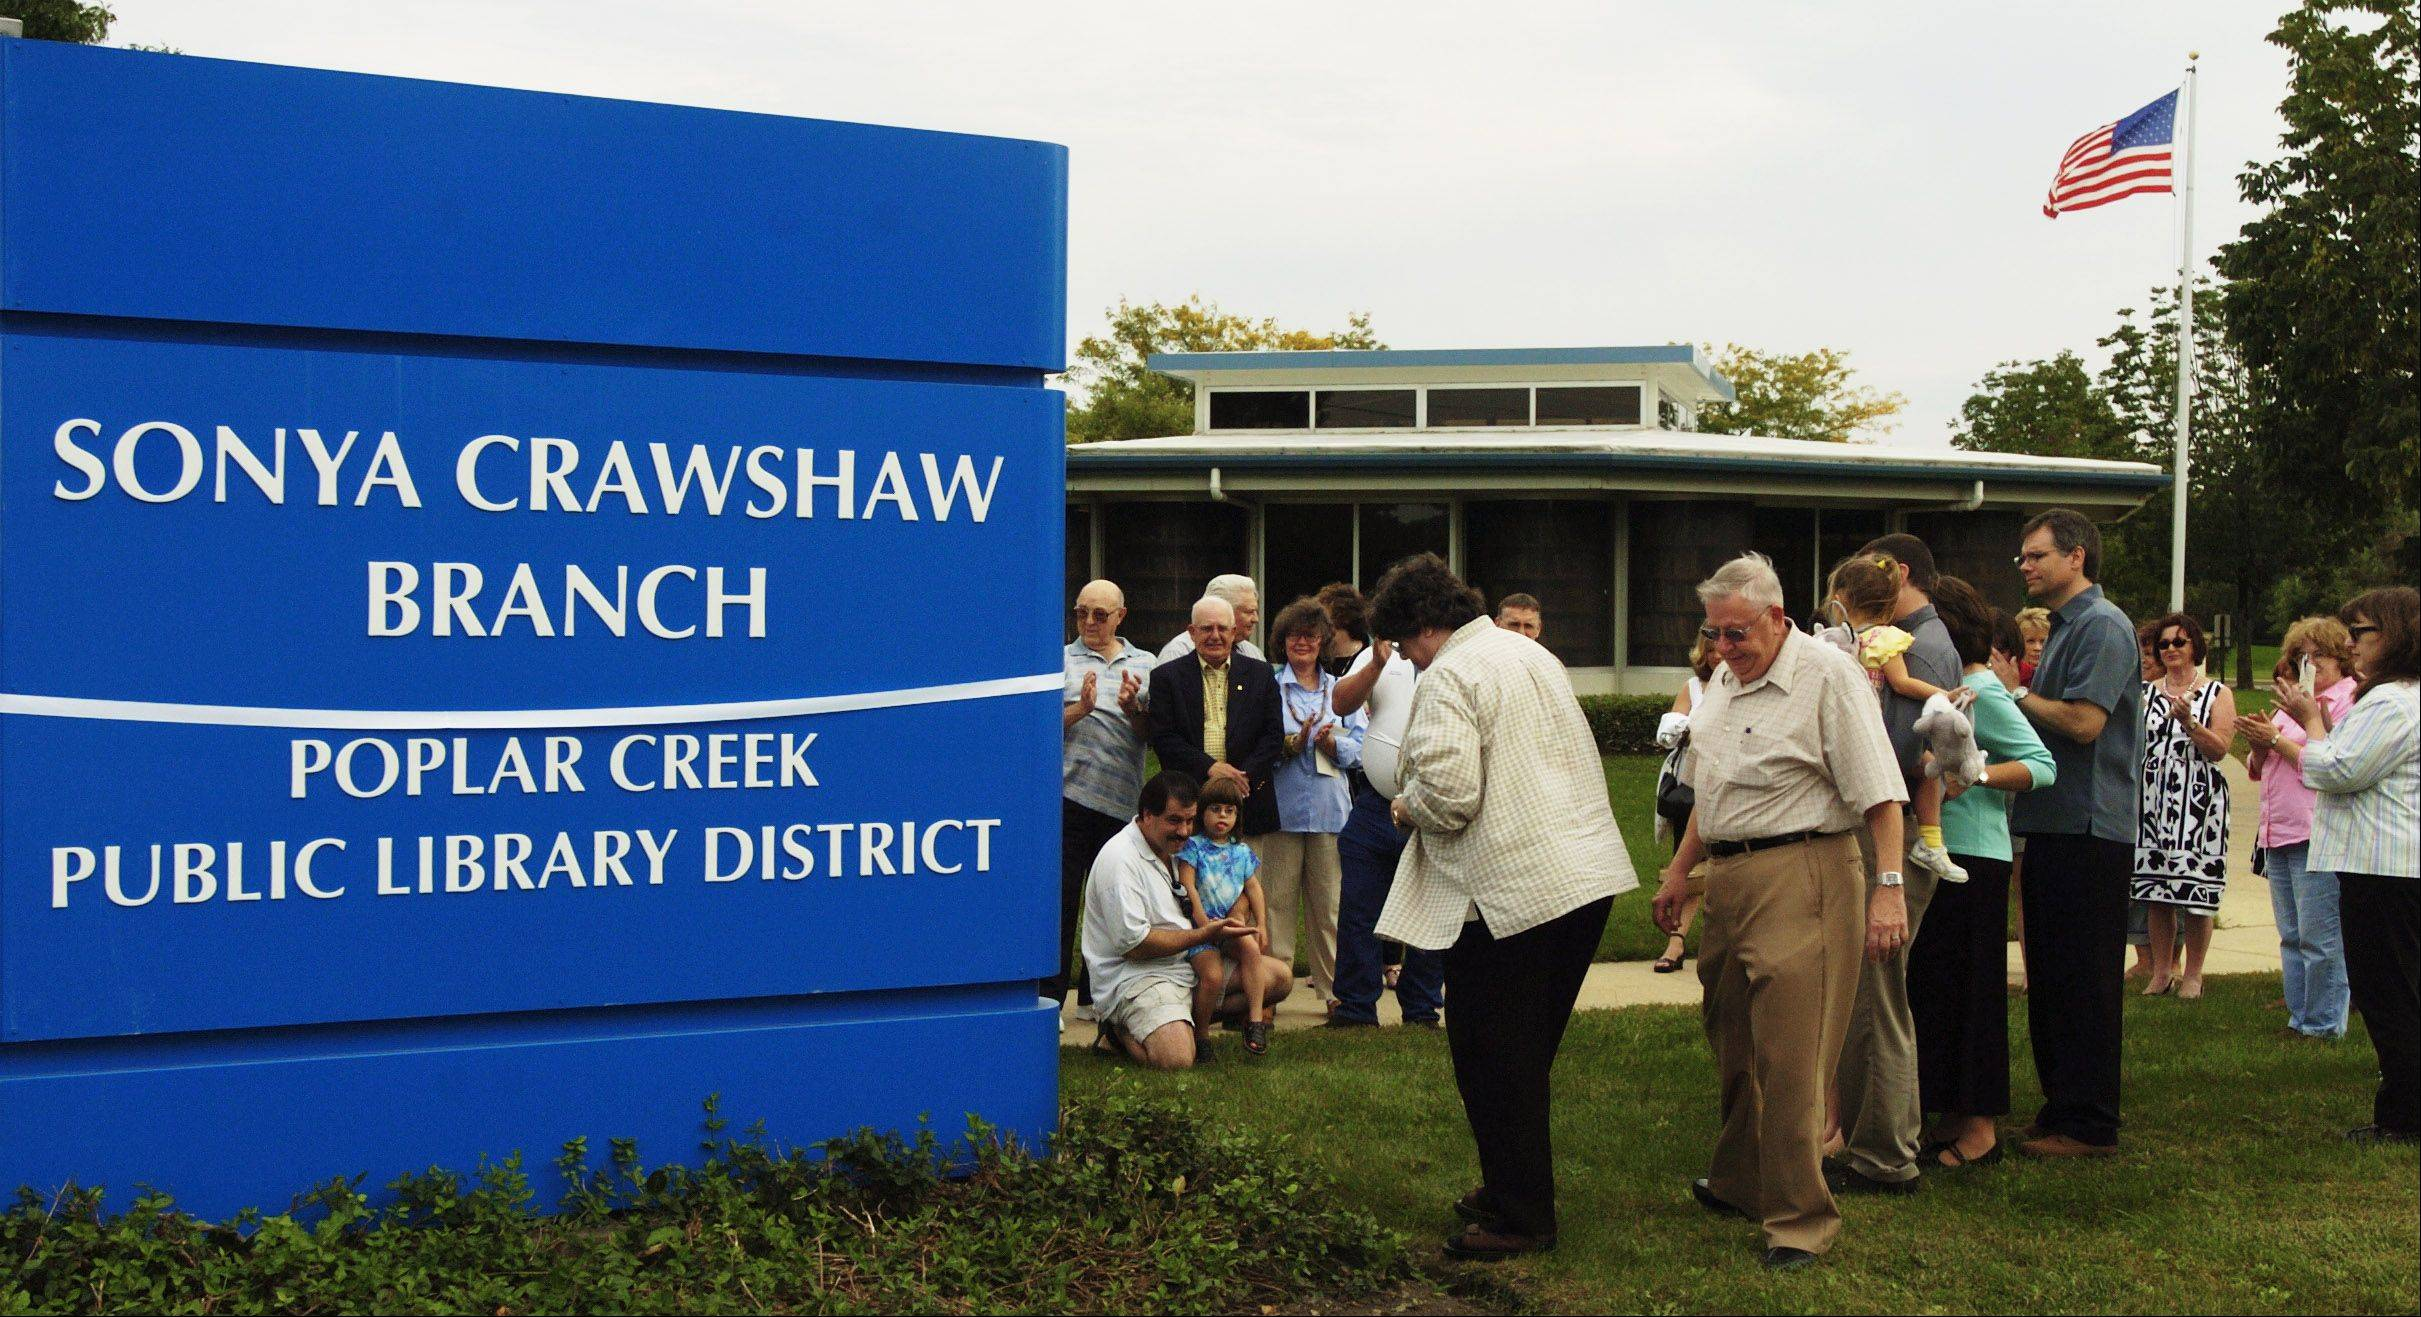 A ribbon-cutting was held in 2006 at the Poplar Creek branch library when it was renamed to honor former Hanover Park Village President Sonya Crawshaw.